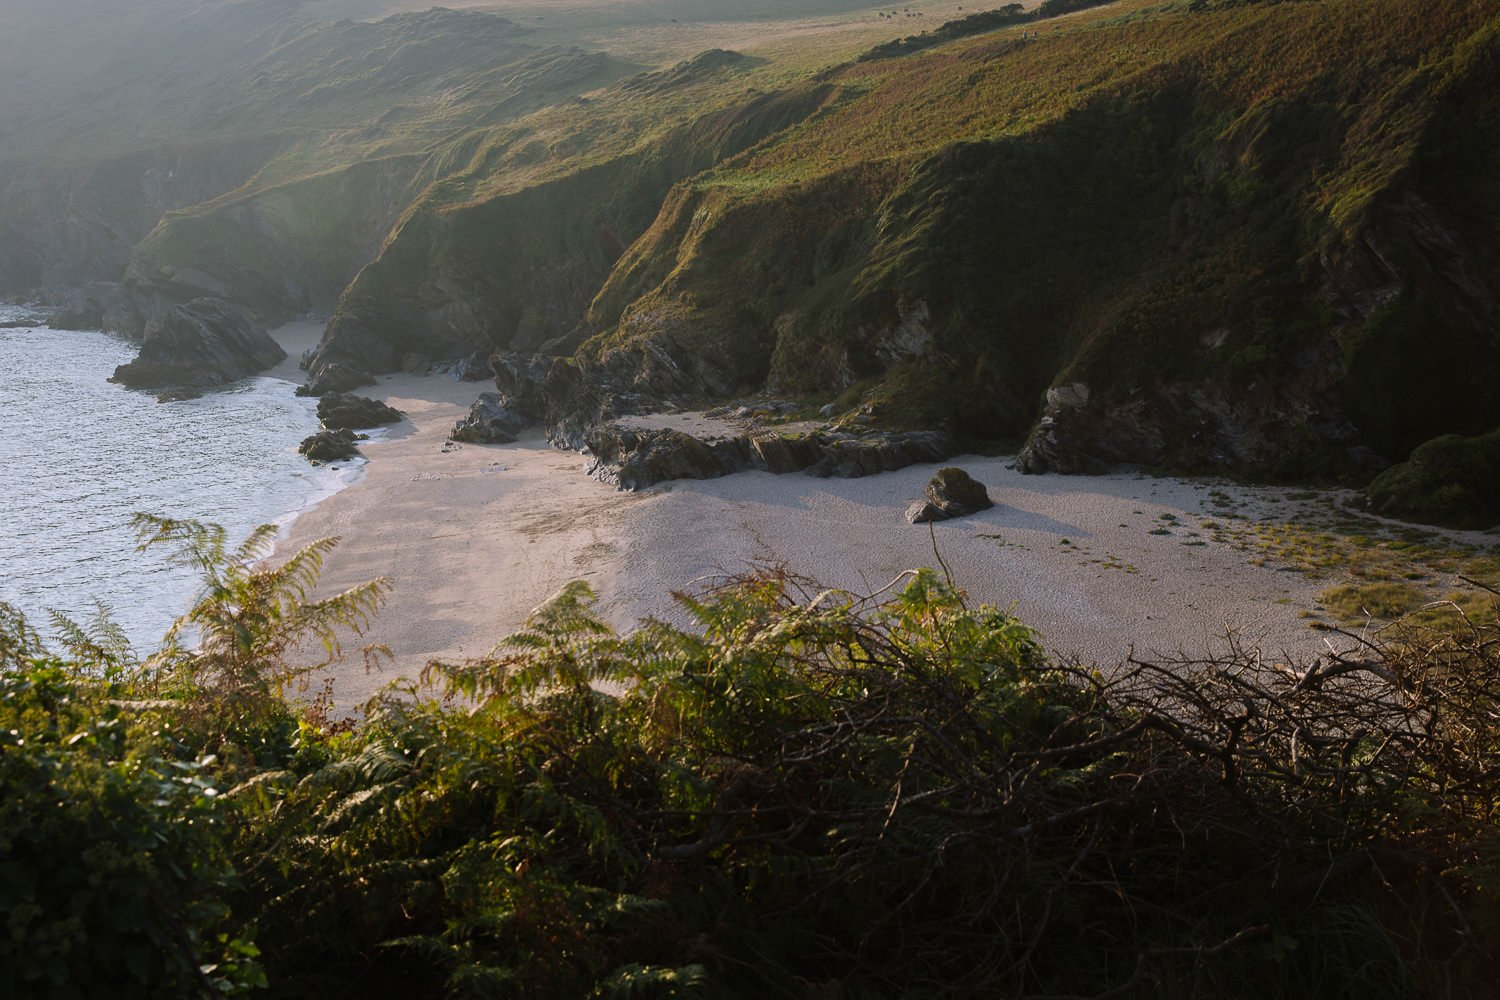 A beautifully sandy beach surrounded by cliffs in late afternoon light.